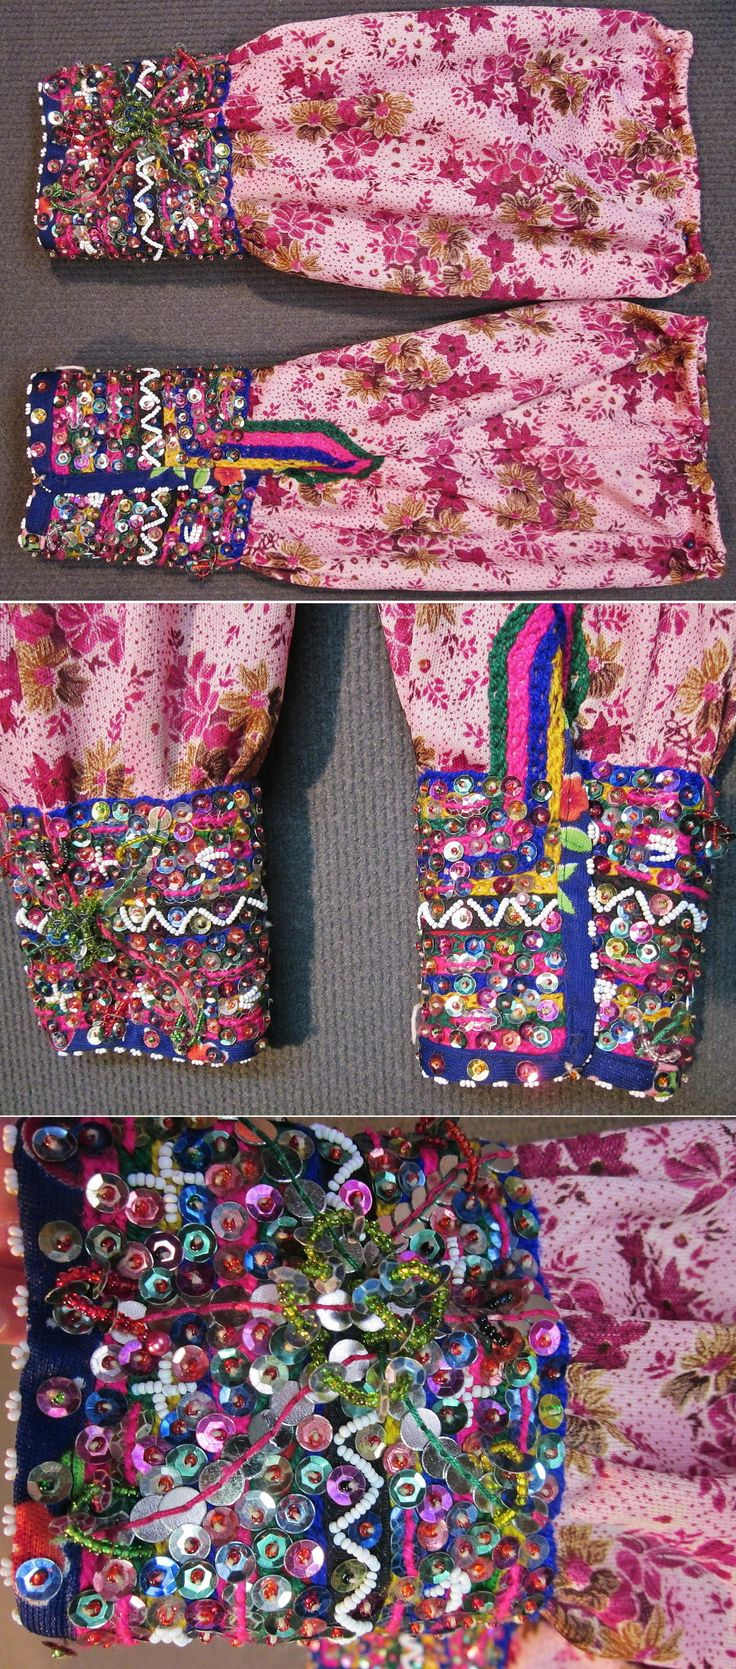 A pair of adorned 'kolluk'.  From the Pomak villages in the Biga district (Çanakkale province), 1950-1975.  'Kolluk' are upper arms protectors; generally made of a cheap kind of fabric - they avoid washing the full robe too often. These ones are not longer functional, but part of a traditional festive costume.  Made of a synthetic printed fabric; adorned with glass beads, metal & mica sequins and cotton embroidery.  (Inv.nr. koL003  - Kavak Costume Collection - Antwerpen/Belgium).